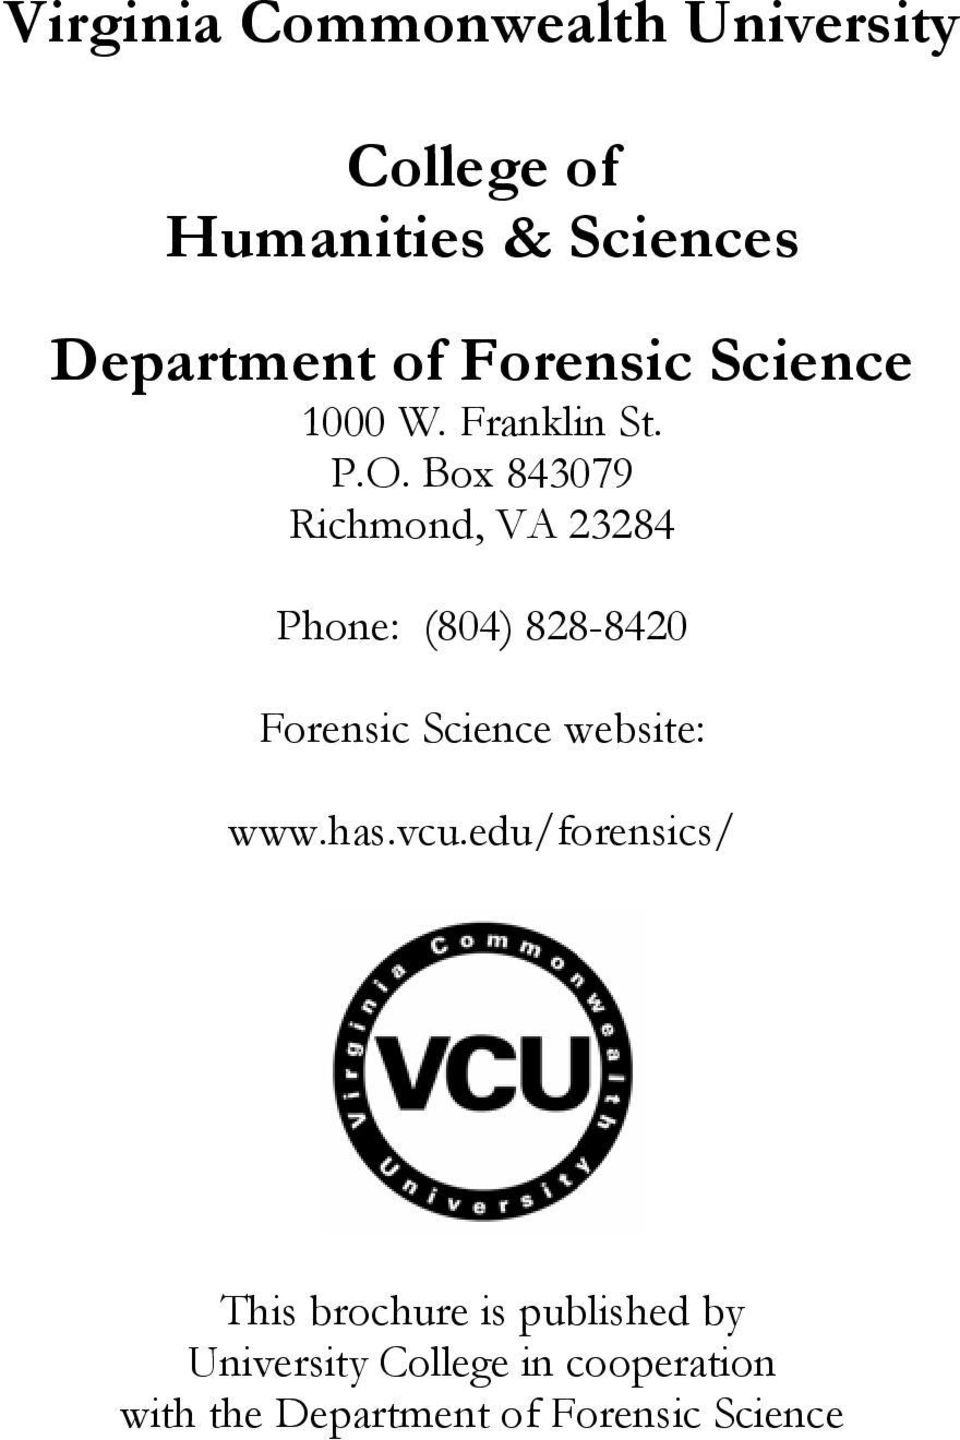 Box 843079 Richmond, VA 23284 Phone: (804) 828-8420 Forensic Science website: www.